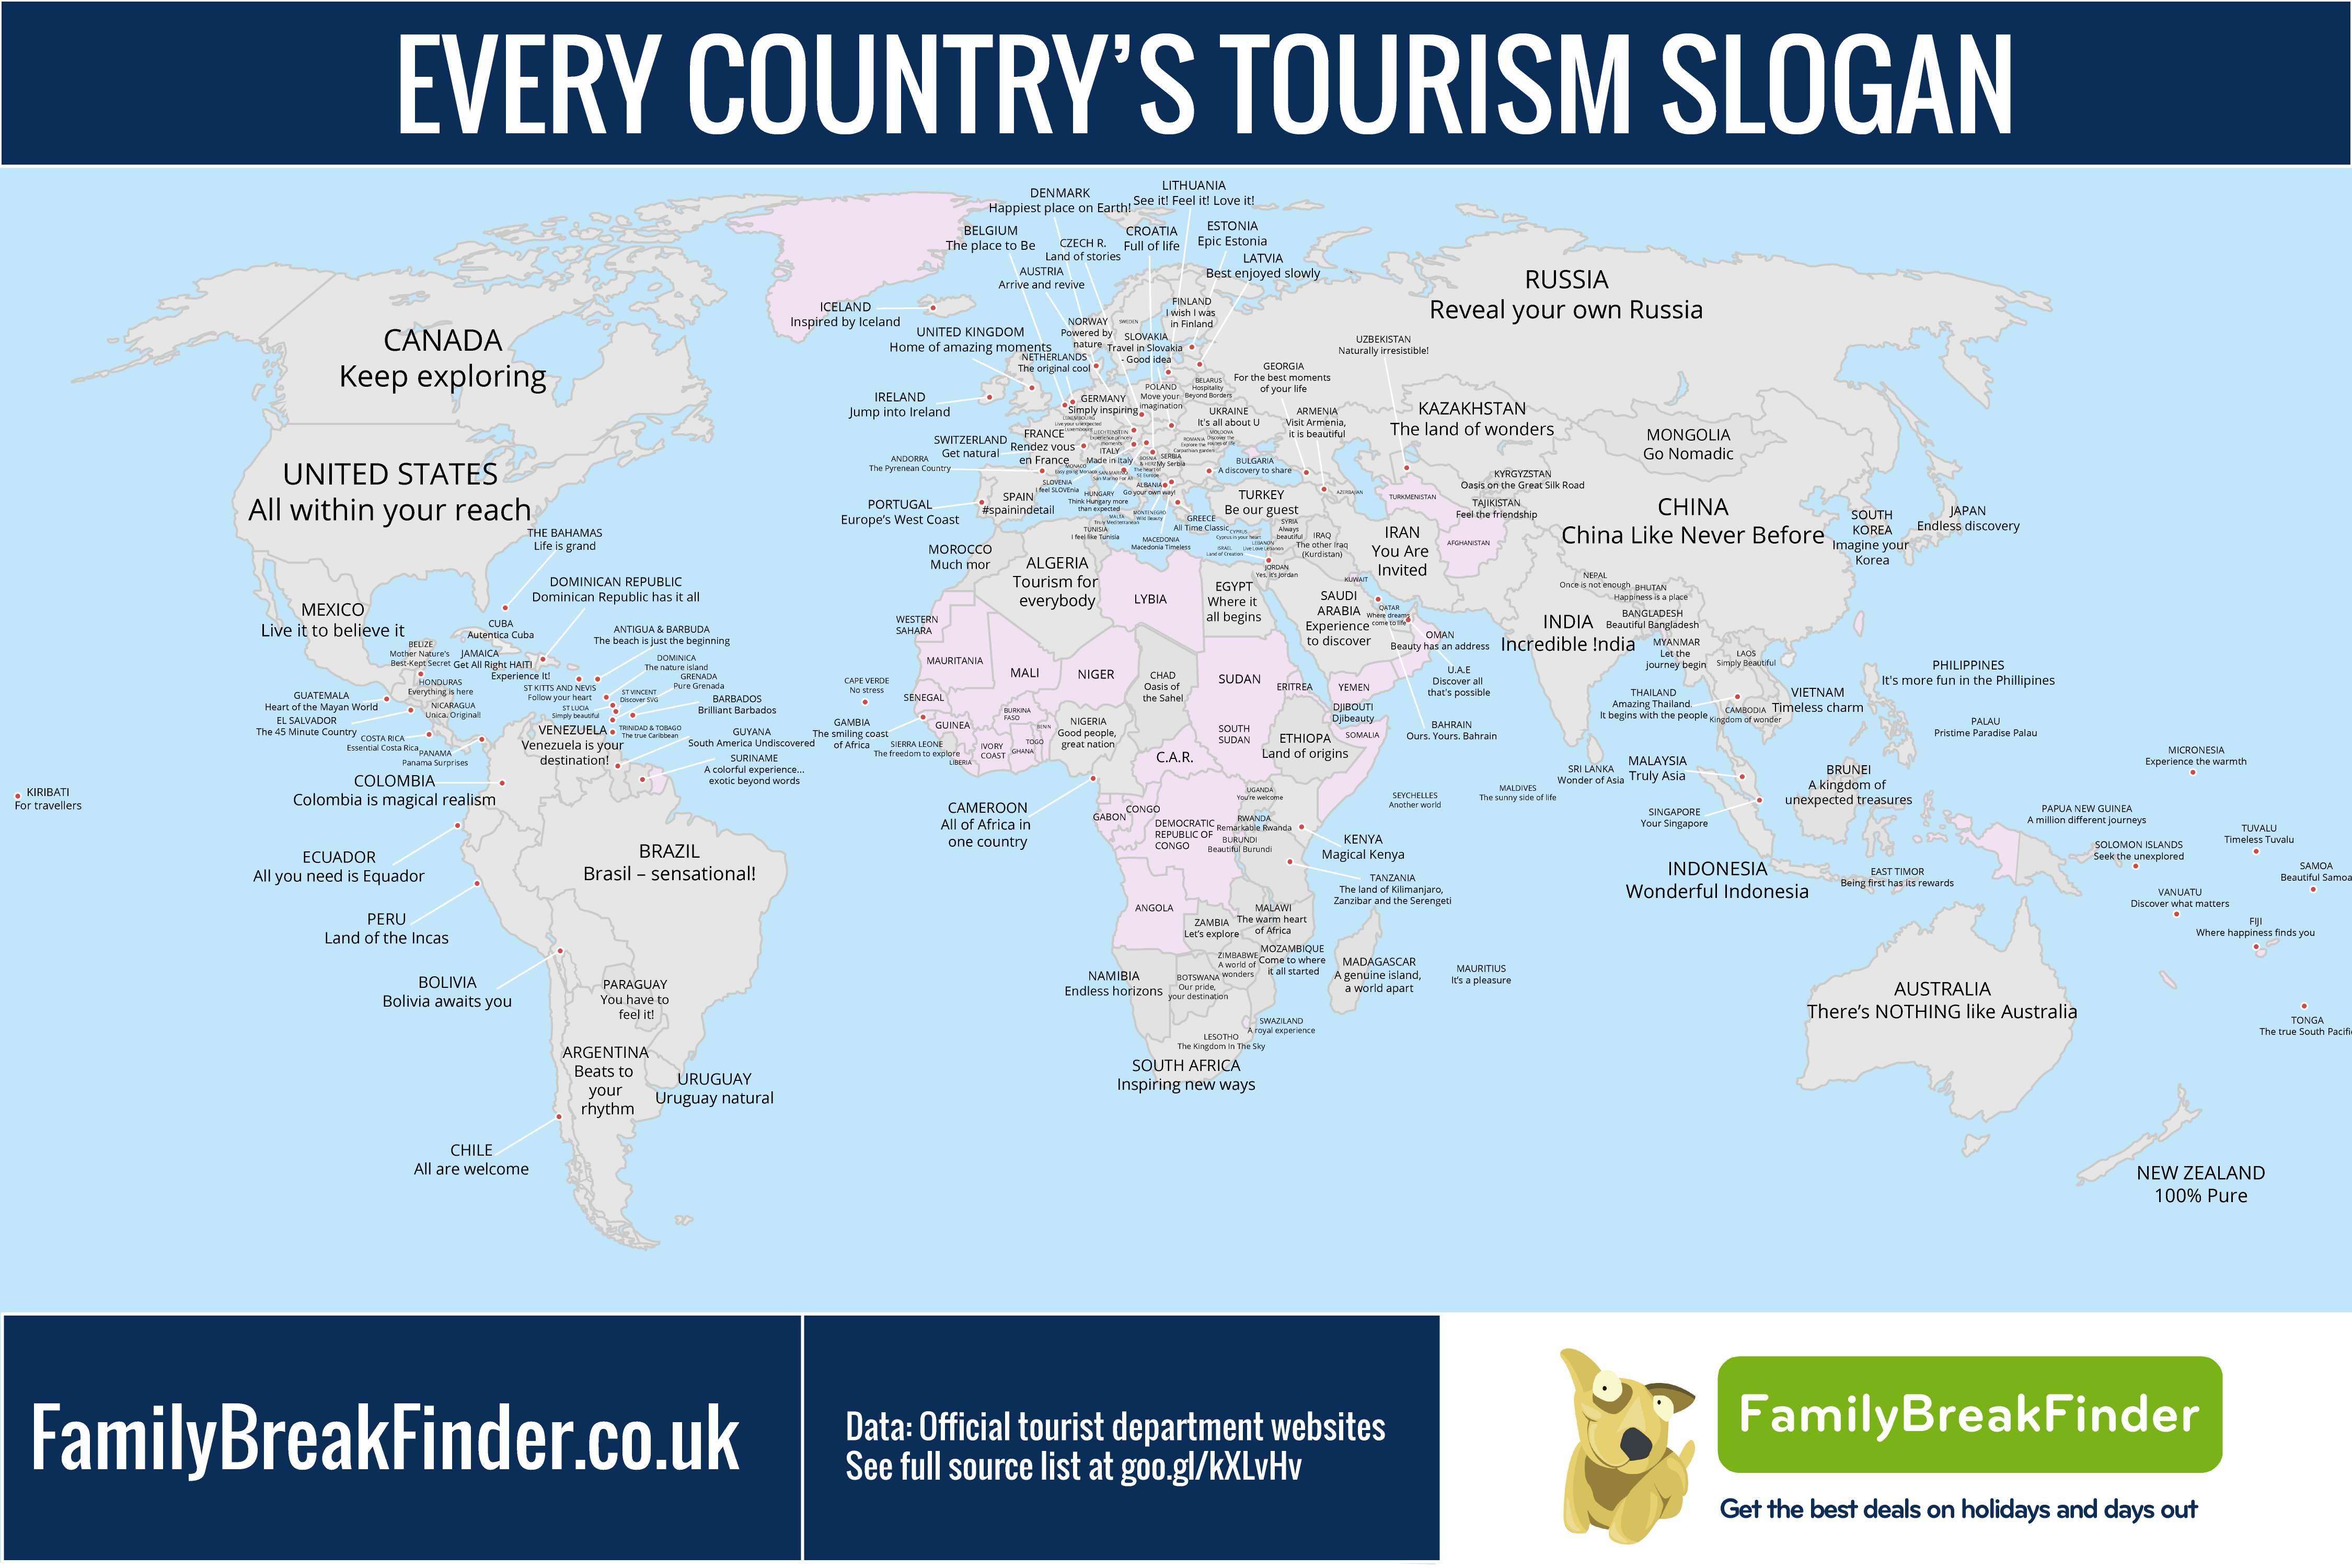 every country's tourism slogan